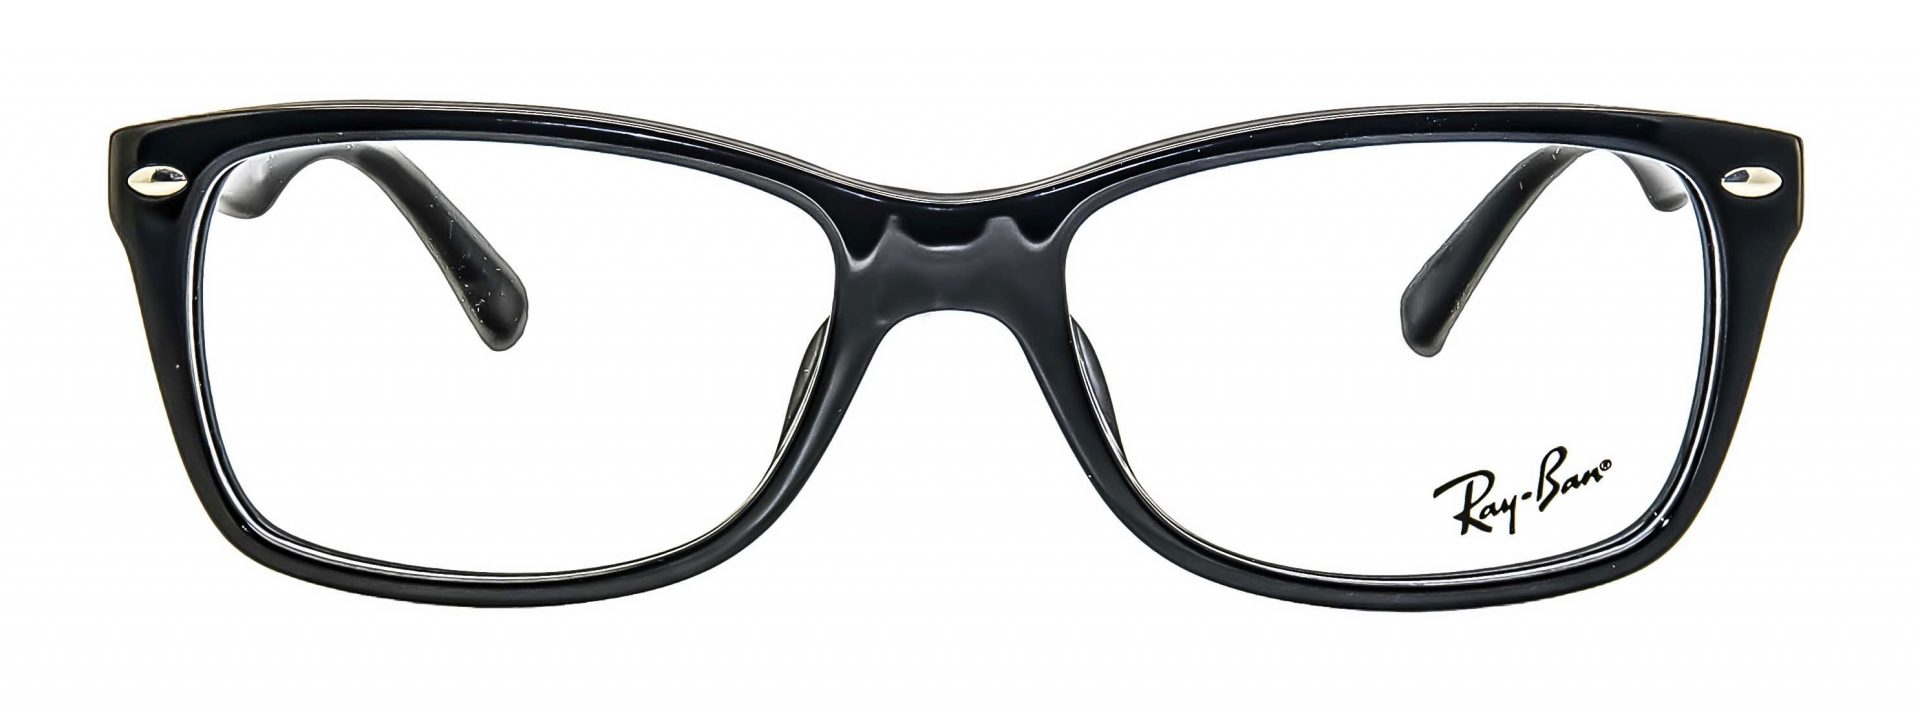 Ray-Ban spectacles 5228f 01 2970x1100